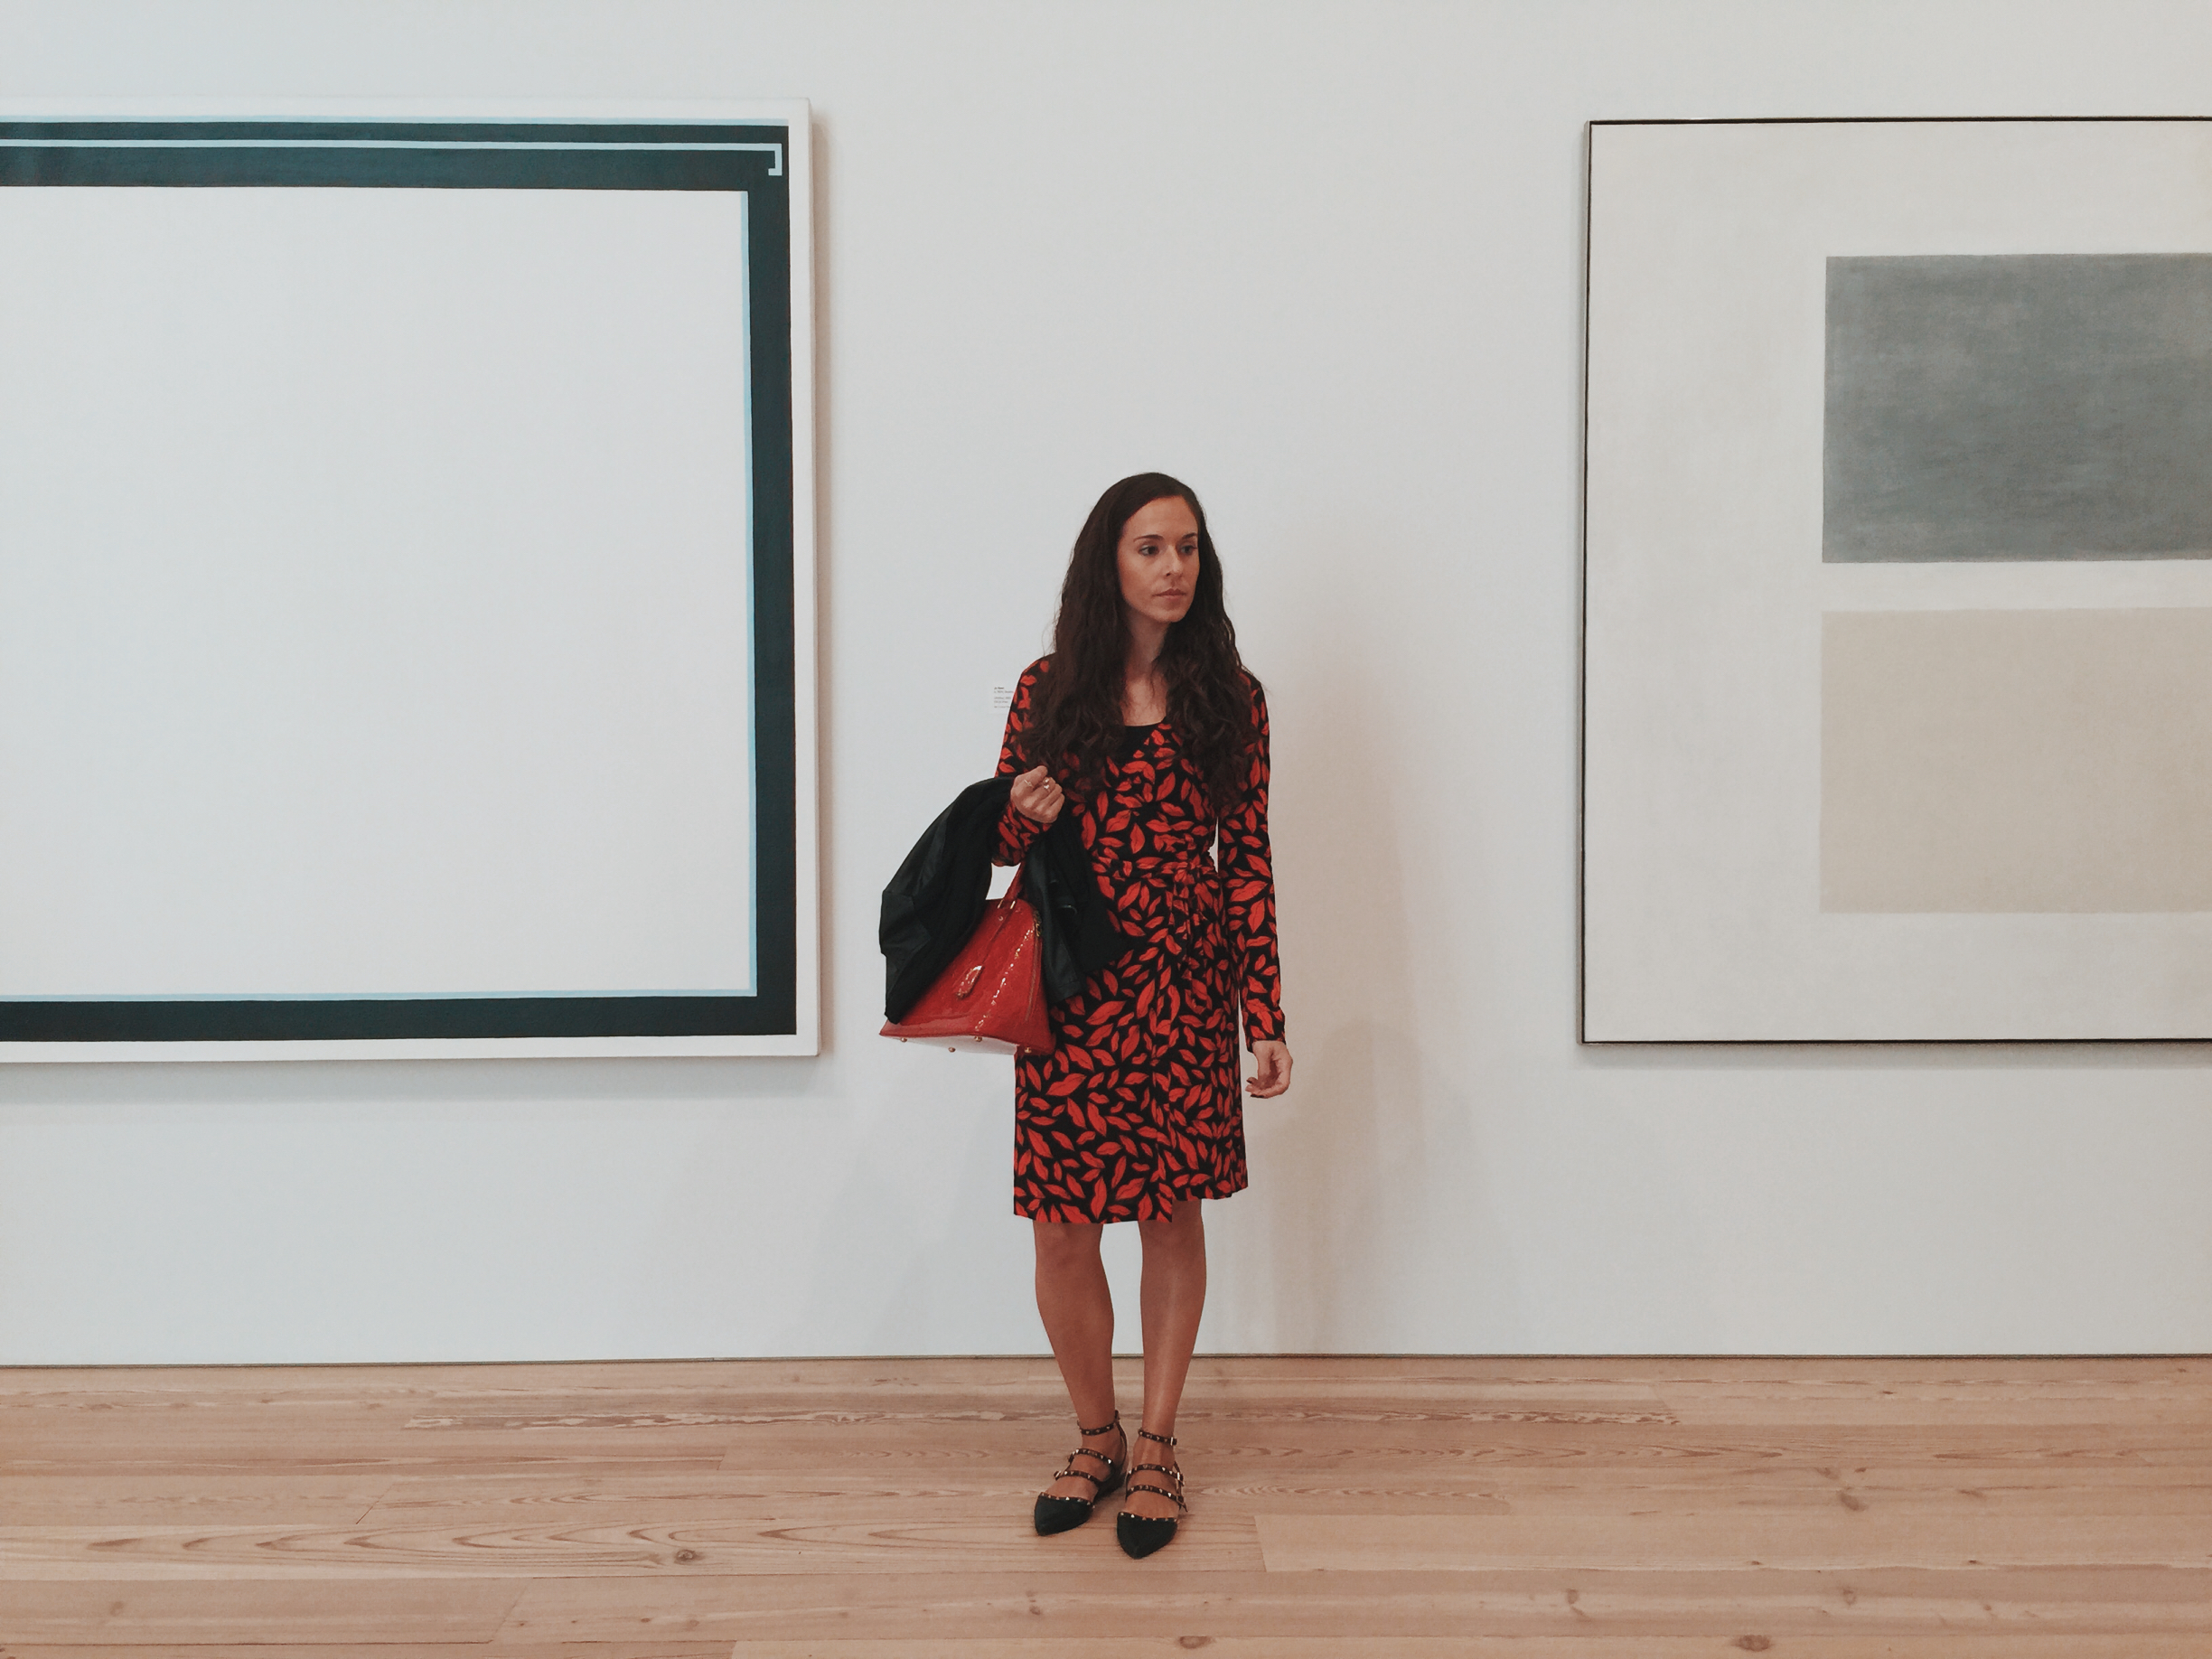 Here I am at NYC's new Whitney Museum in the Meat Packing district, wearing my new  Diane Von Furstenberg  (DVF) wrap dress,  Aldo  studded flats, and  Louis Vuitton  Alma bag. Photography by  Francisco Graciano .